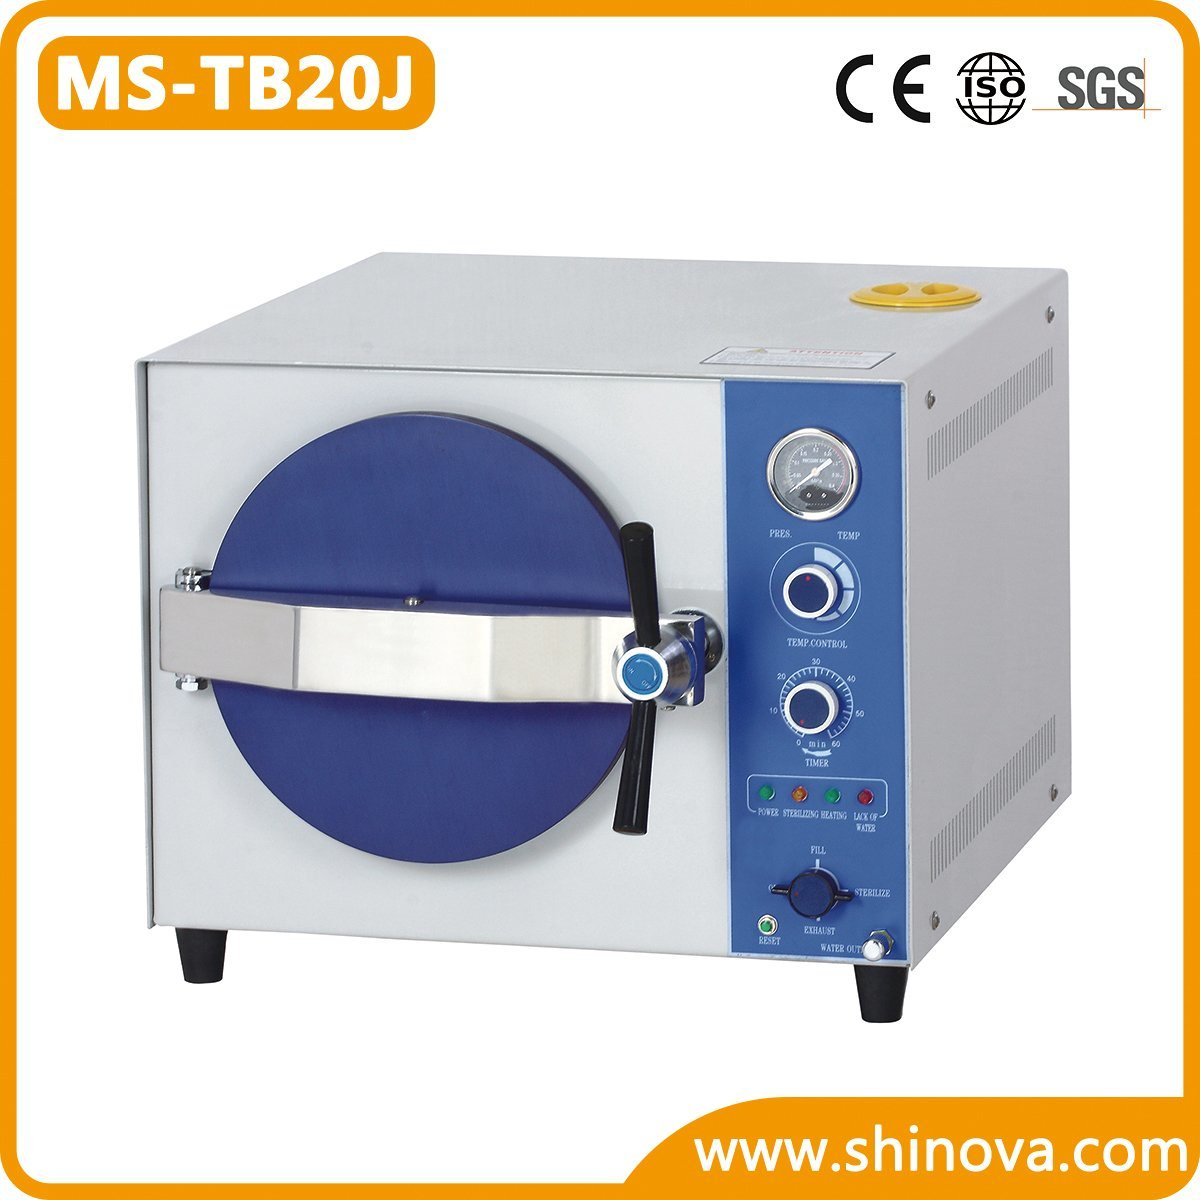 20L Tabletop Autoclave (MS-TB20J)